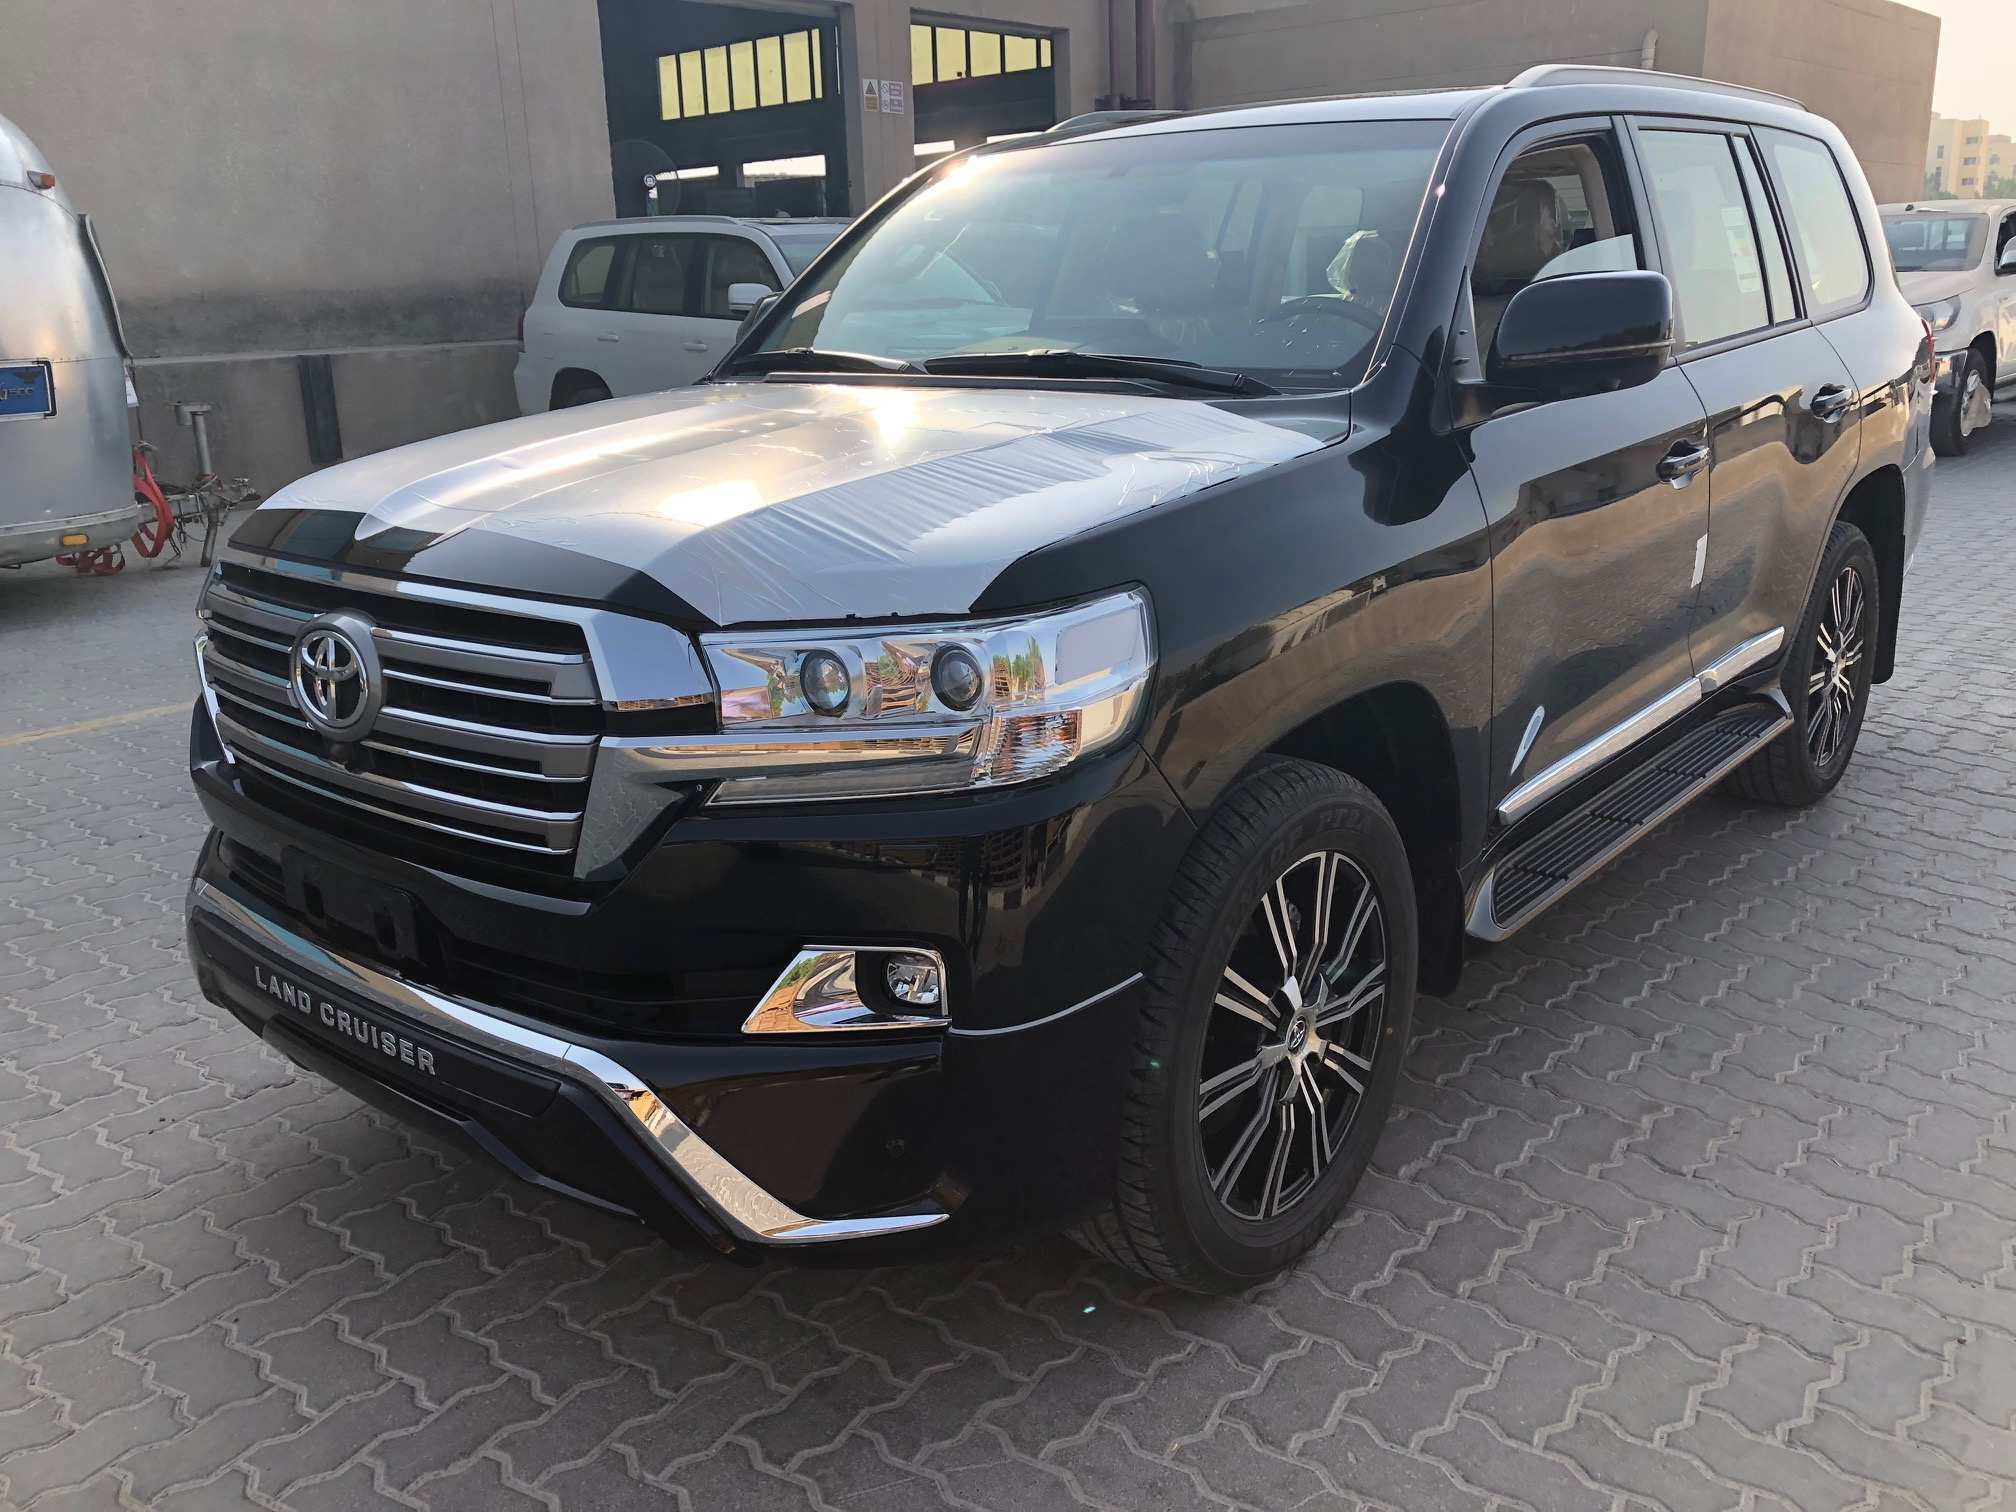 56 All New 2019 Land Cruiser Picture